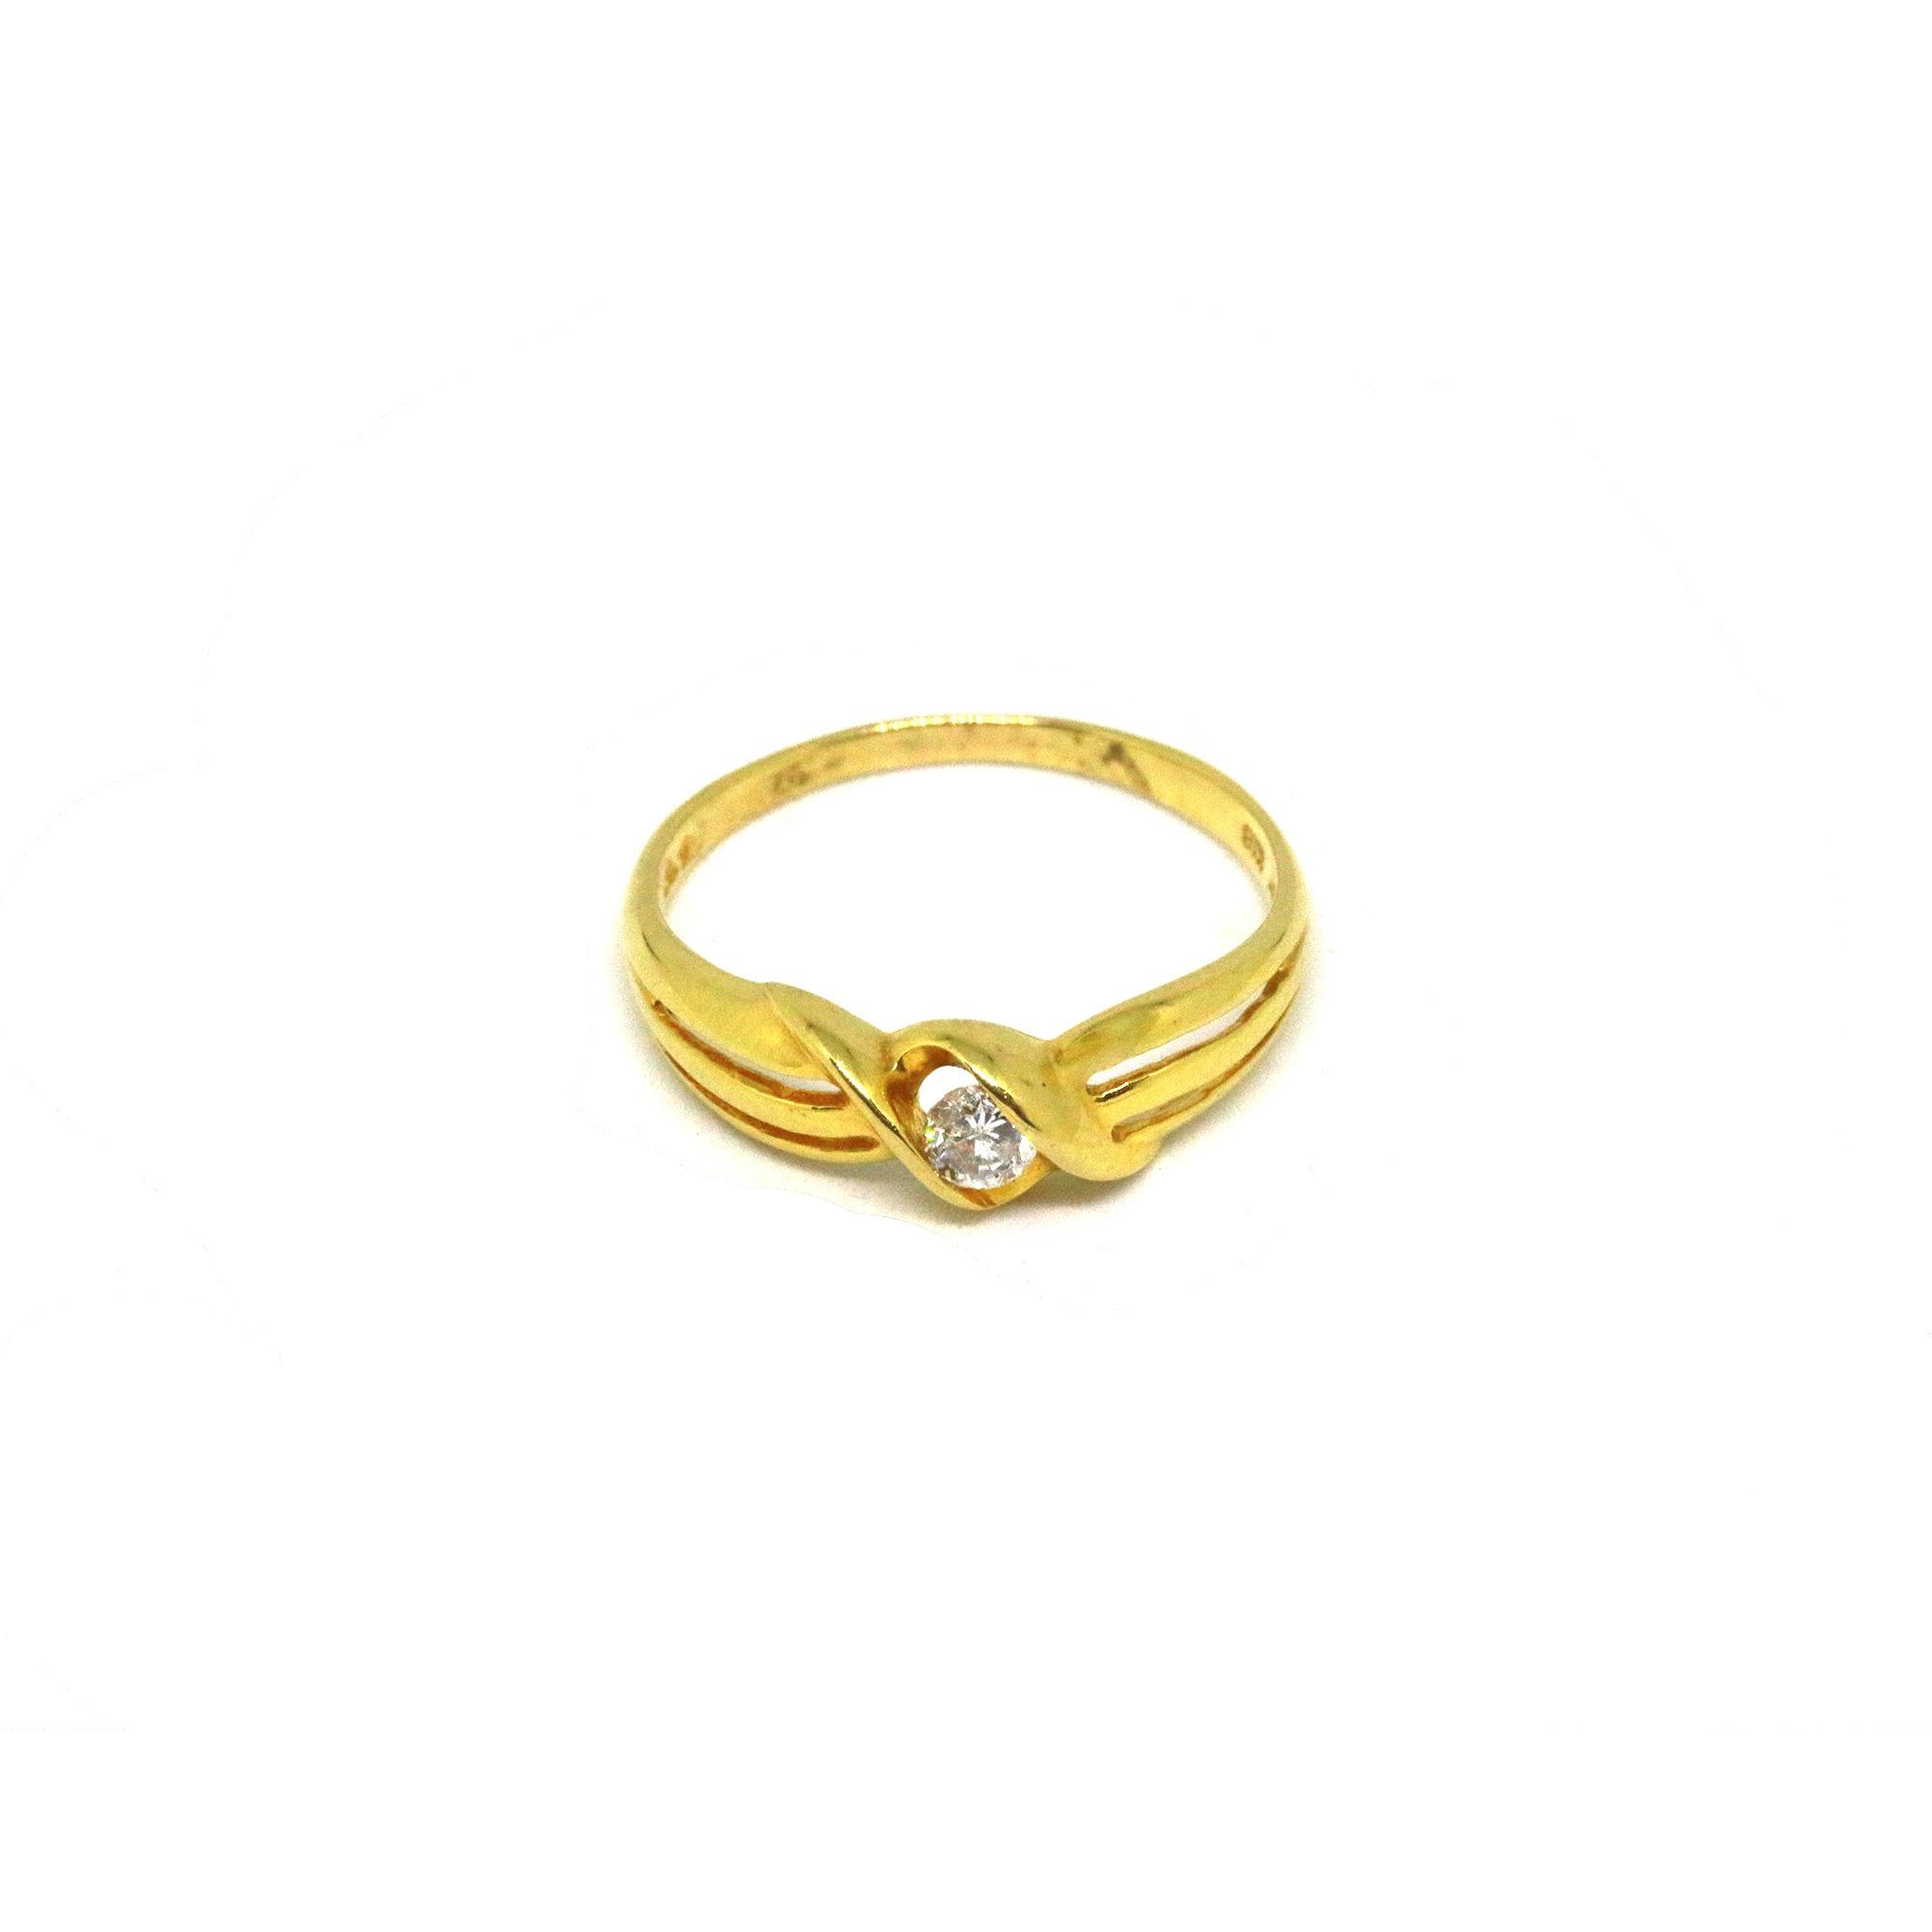 rose poshness untitled ring gold white magic lover moonstone rings virgin vermeil products moon